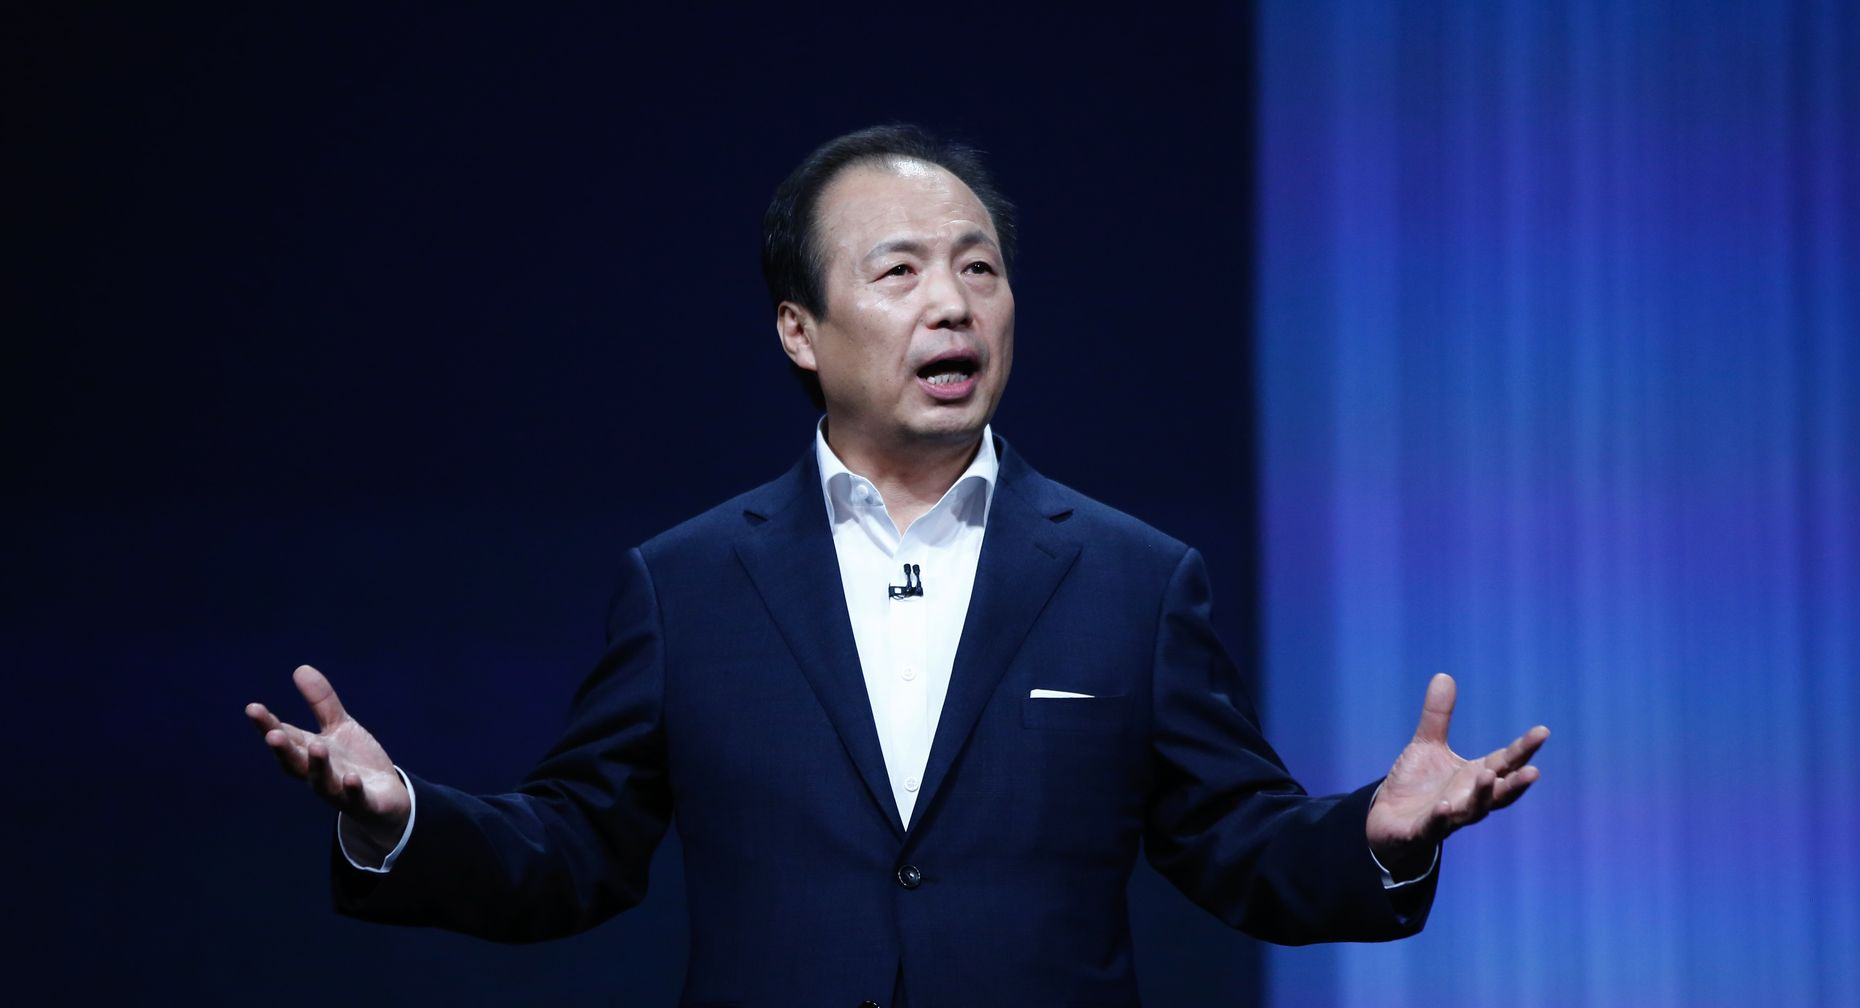 JK Shin, CEO of Samsung's mobile division, at Mobile World Congress last week. Photo by Bloomberg.